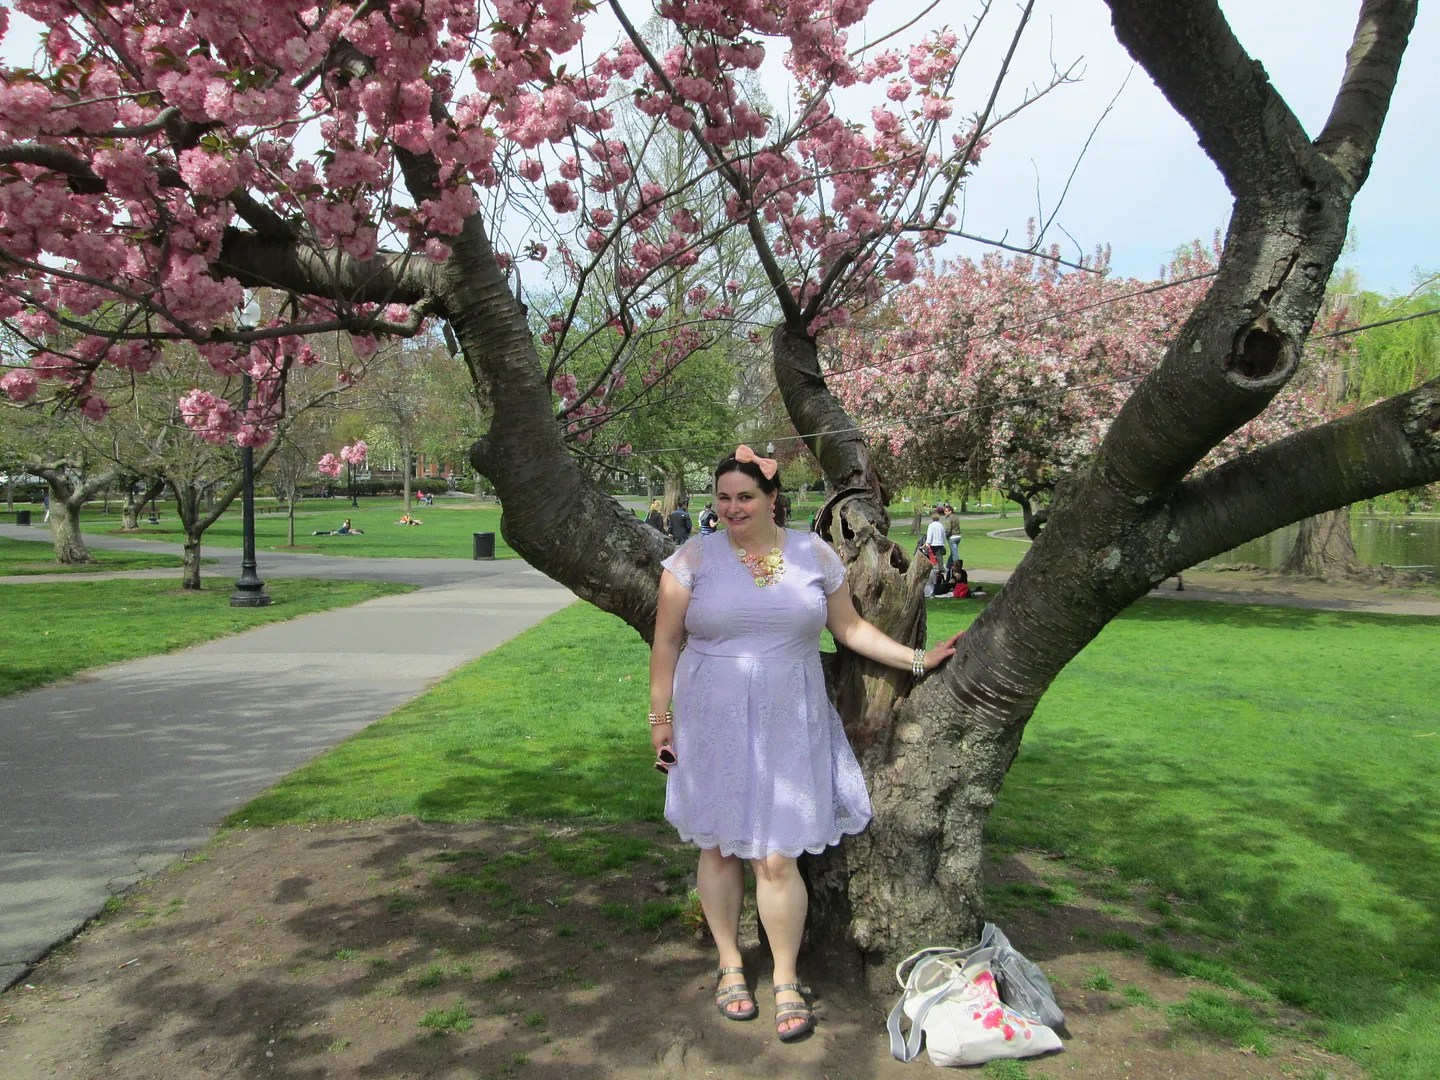 woman in lavender dress standing in front of pink tree